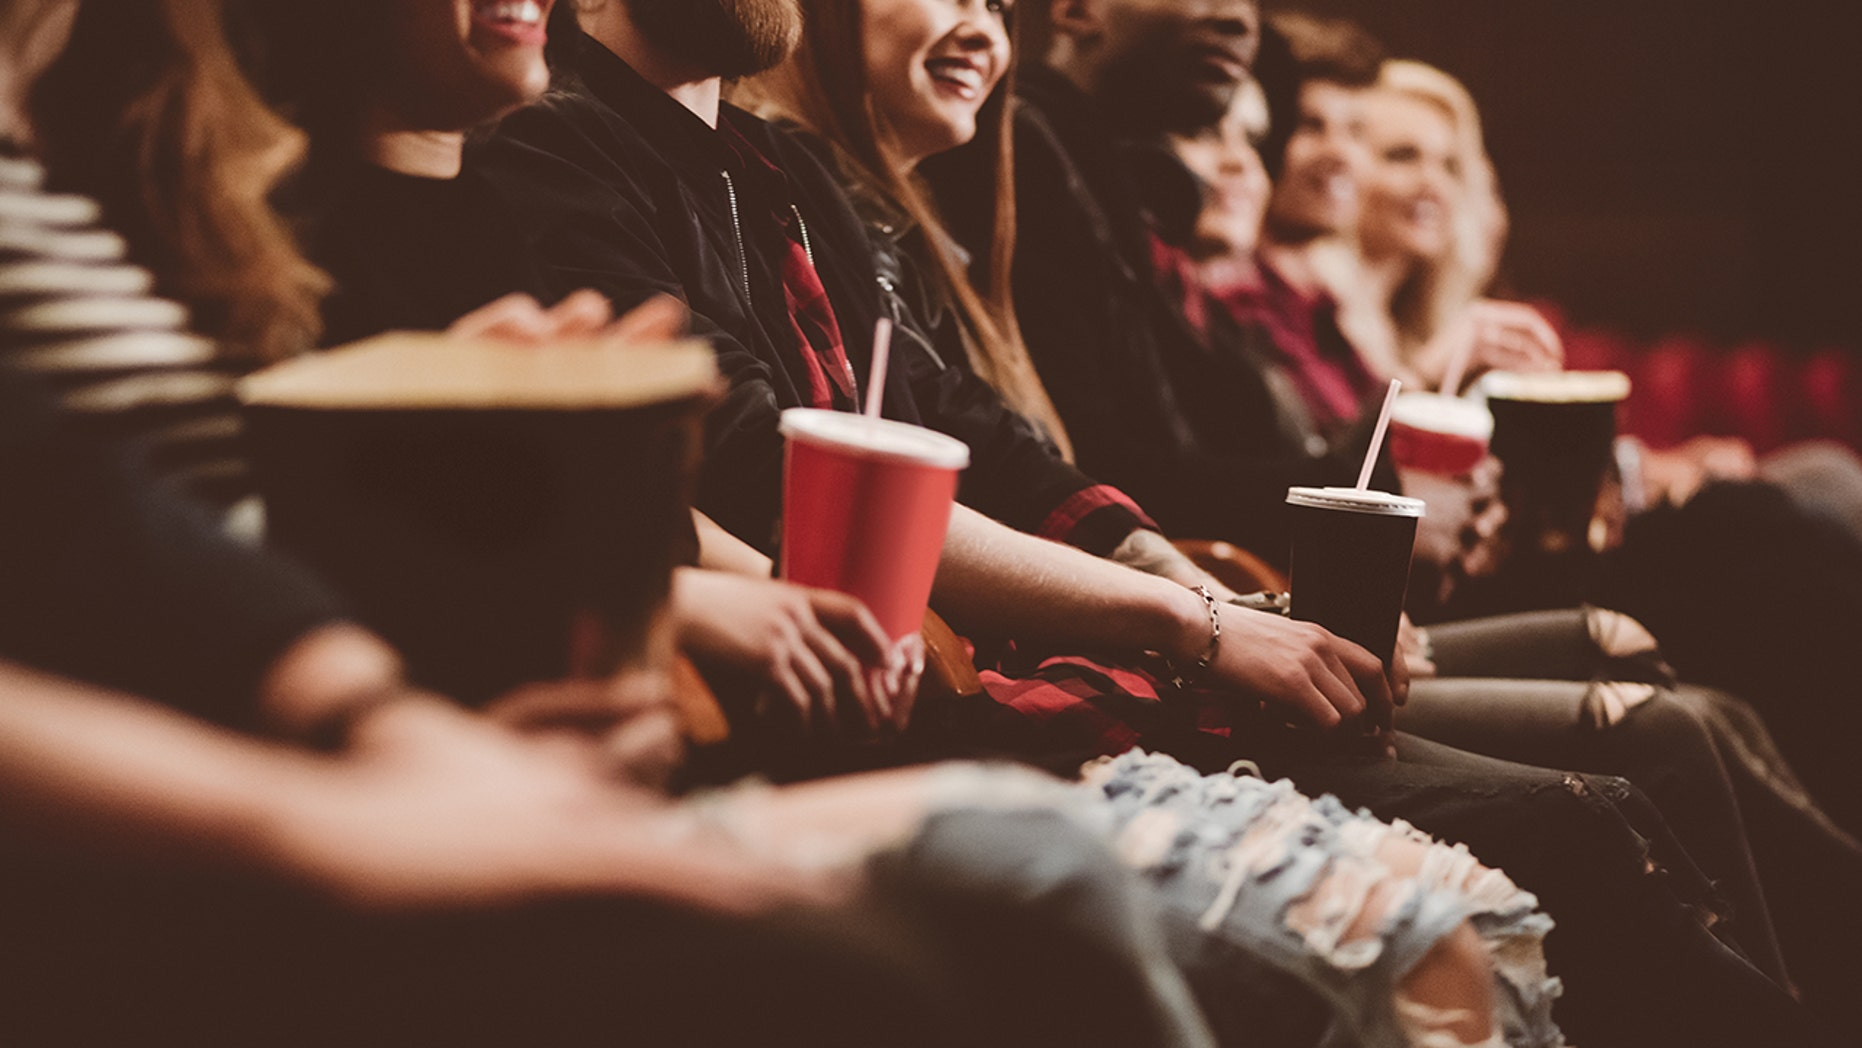 A woman's movie theatre snack has gone viral.